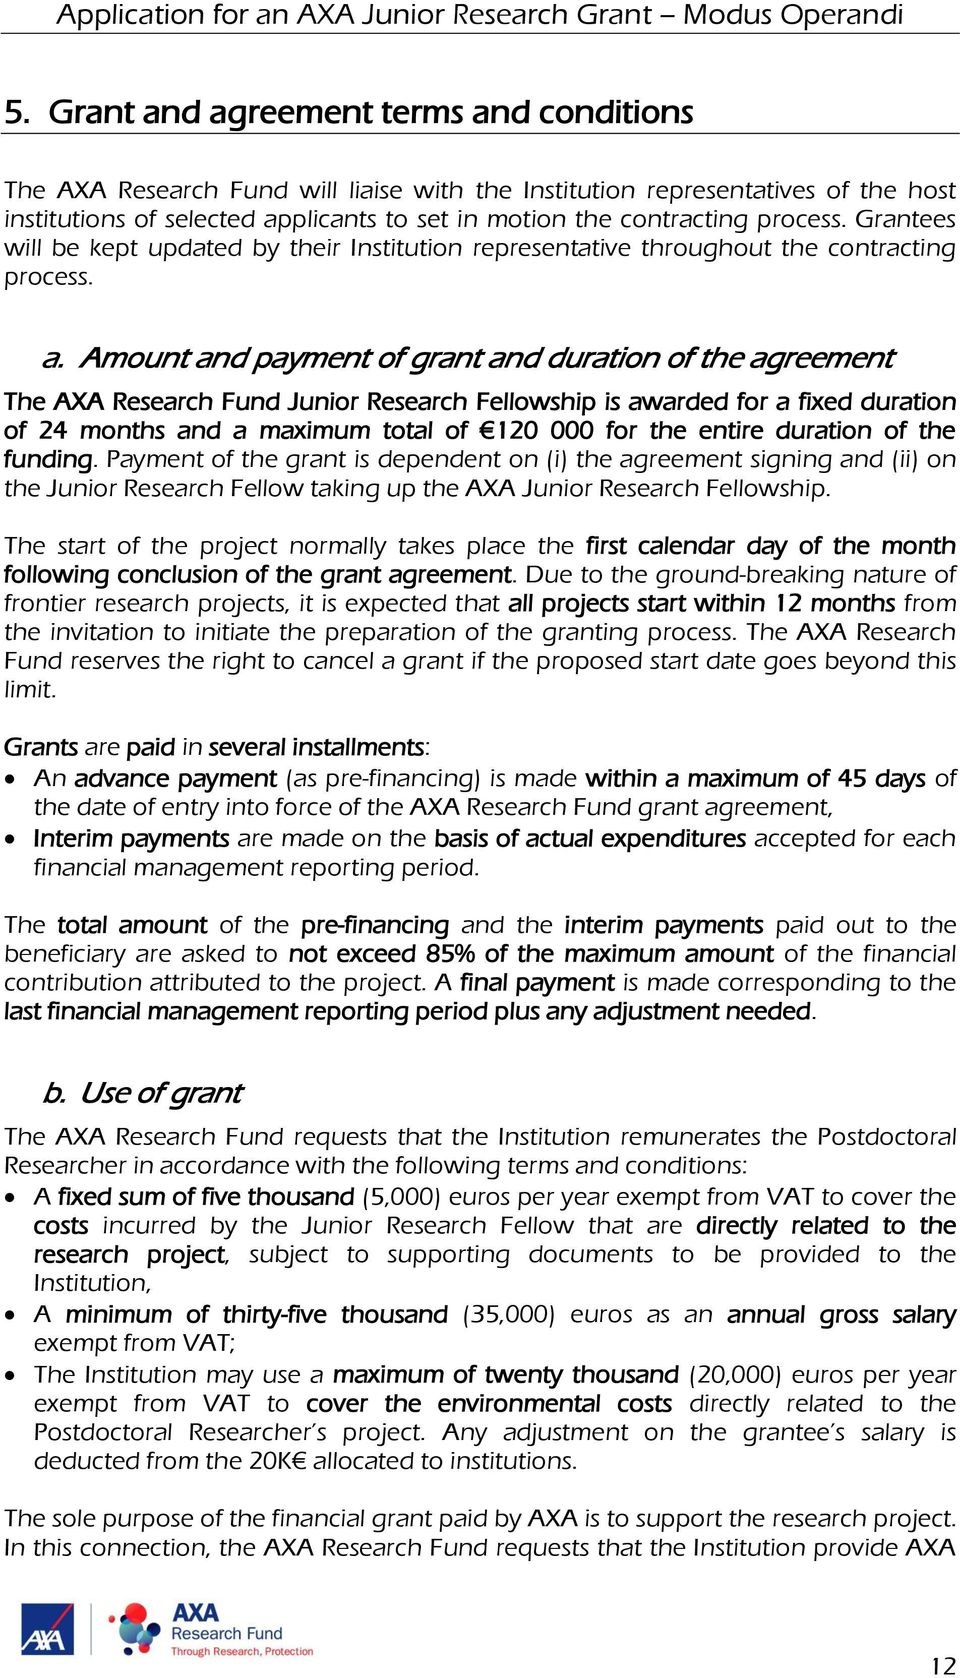 Amount and payment of grant and duration of the agreement The AXA Research Fund Junior Research Fellowship is awarded for a fixed duration of 24 months and a maximum total of 120 000 for the entire